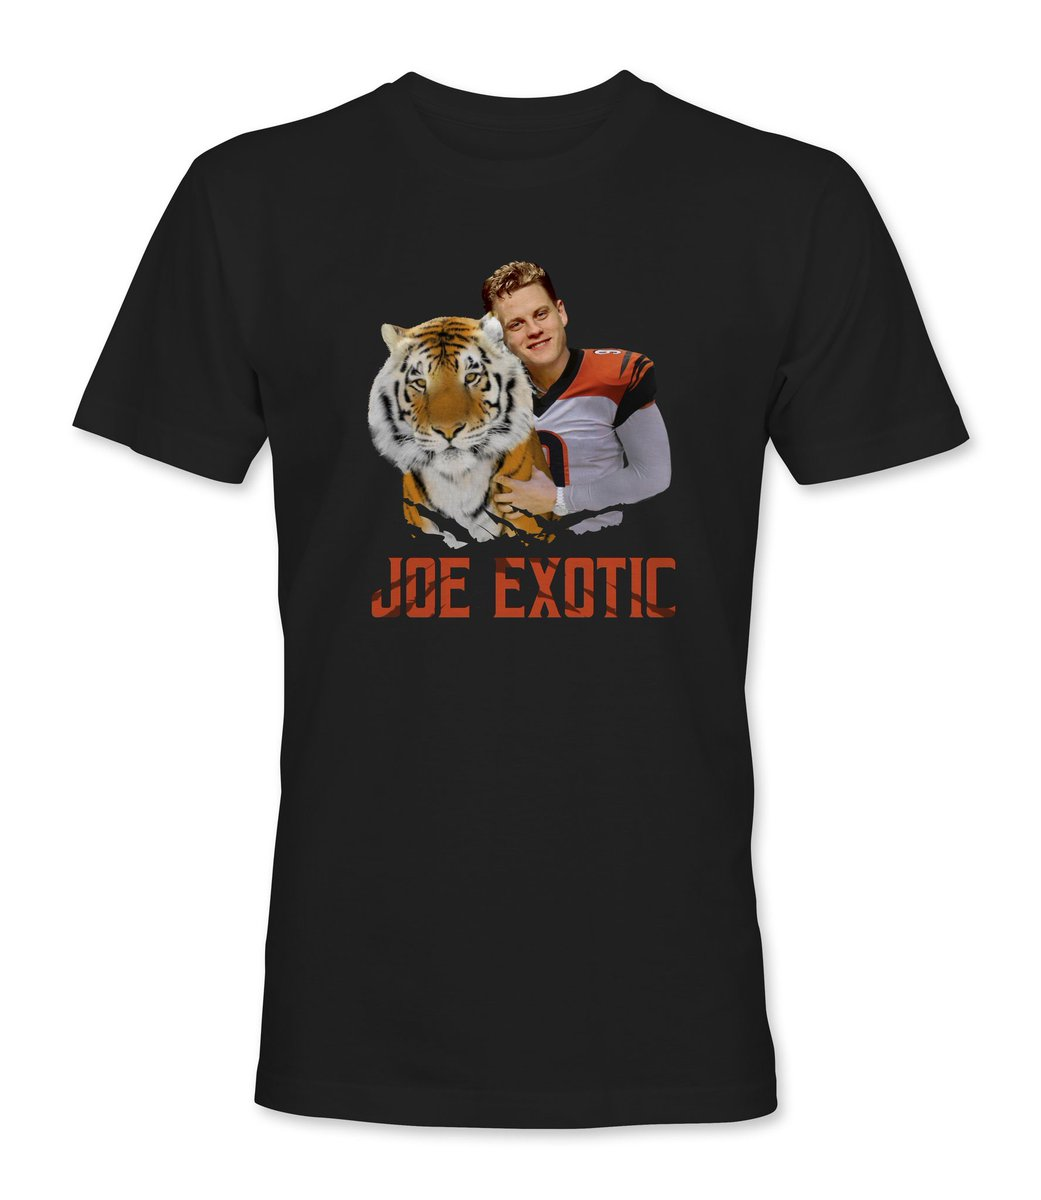 Quarantine giveaway time!   @NKY_Tees made this Joe Burrow shirt and you can get it for free!   All you have to do for a chance to win is RT this tweet,follow me,and follow @NKY_Tees   The winner will be picked after the Bengals take Burrow at 1 on draft night https://t.co/eNQKVh2AWM